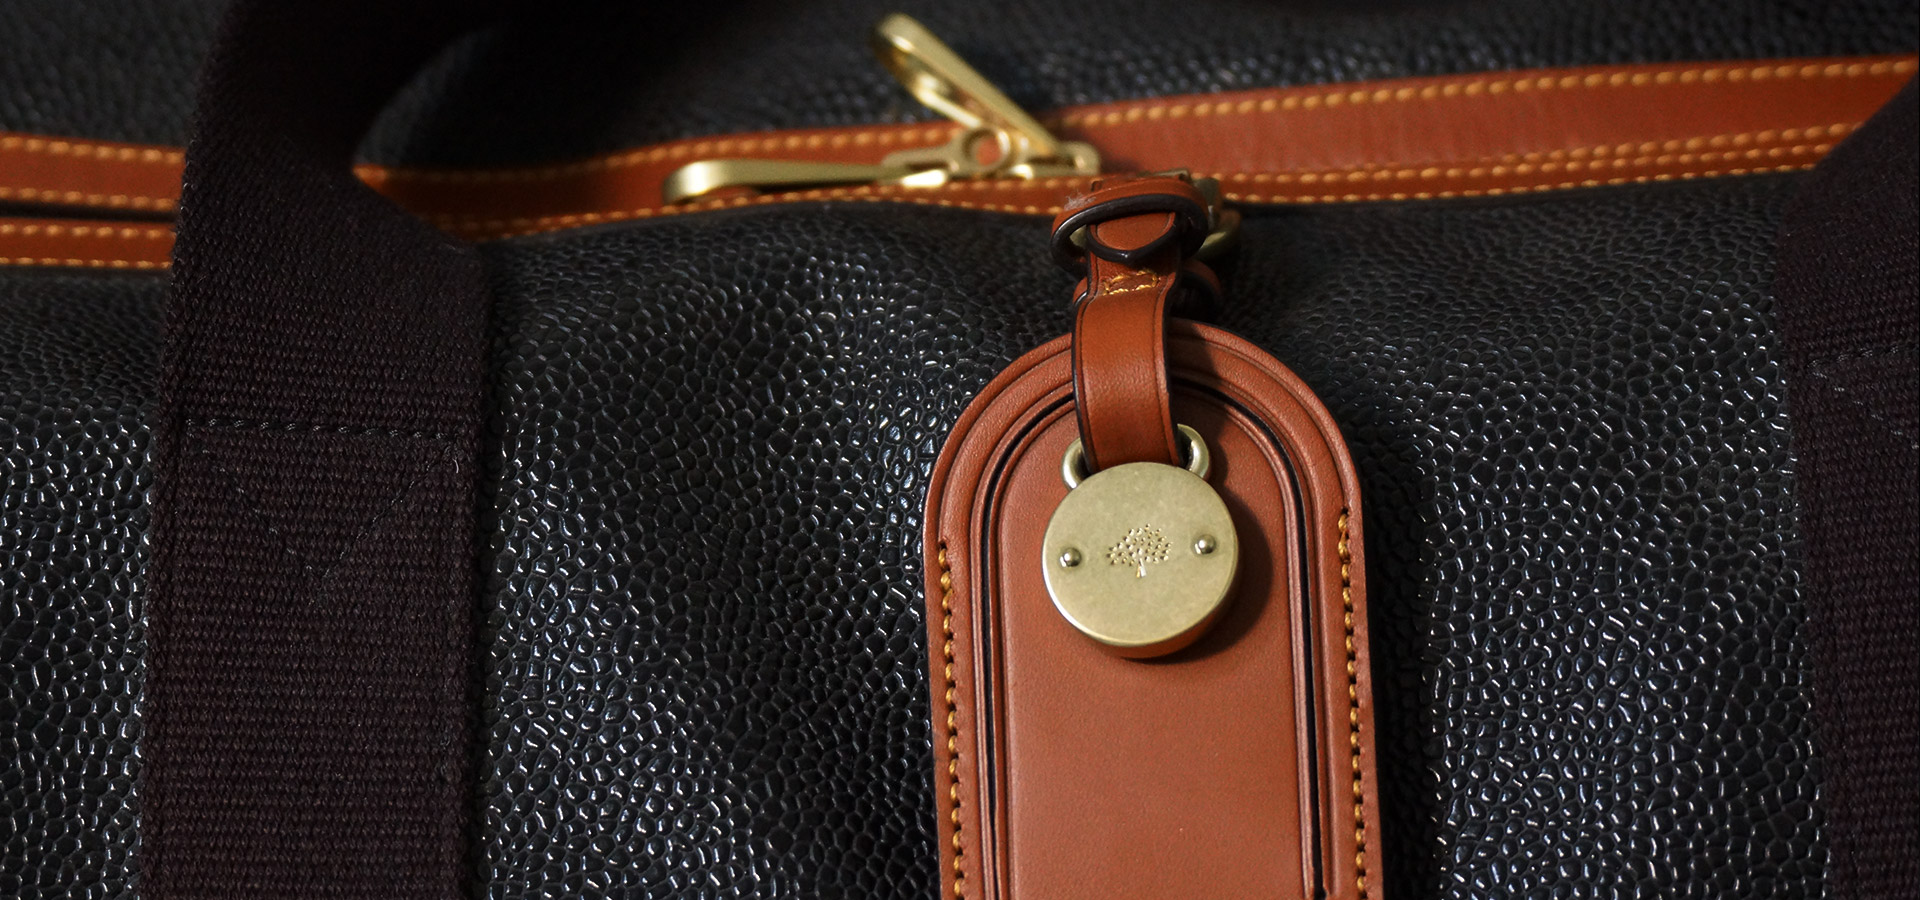 mulberry bag detail